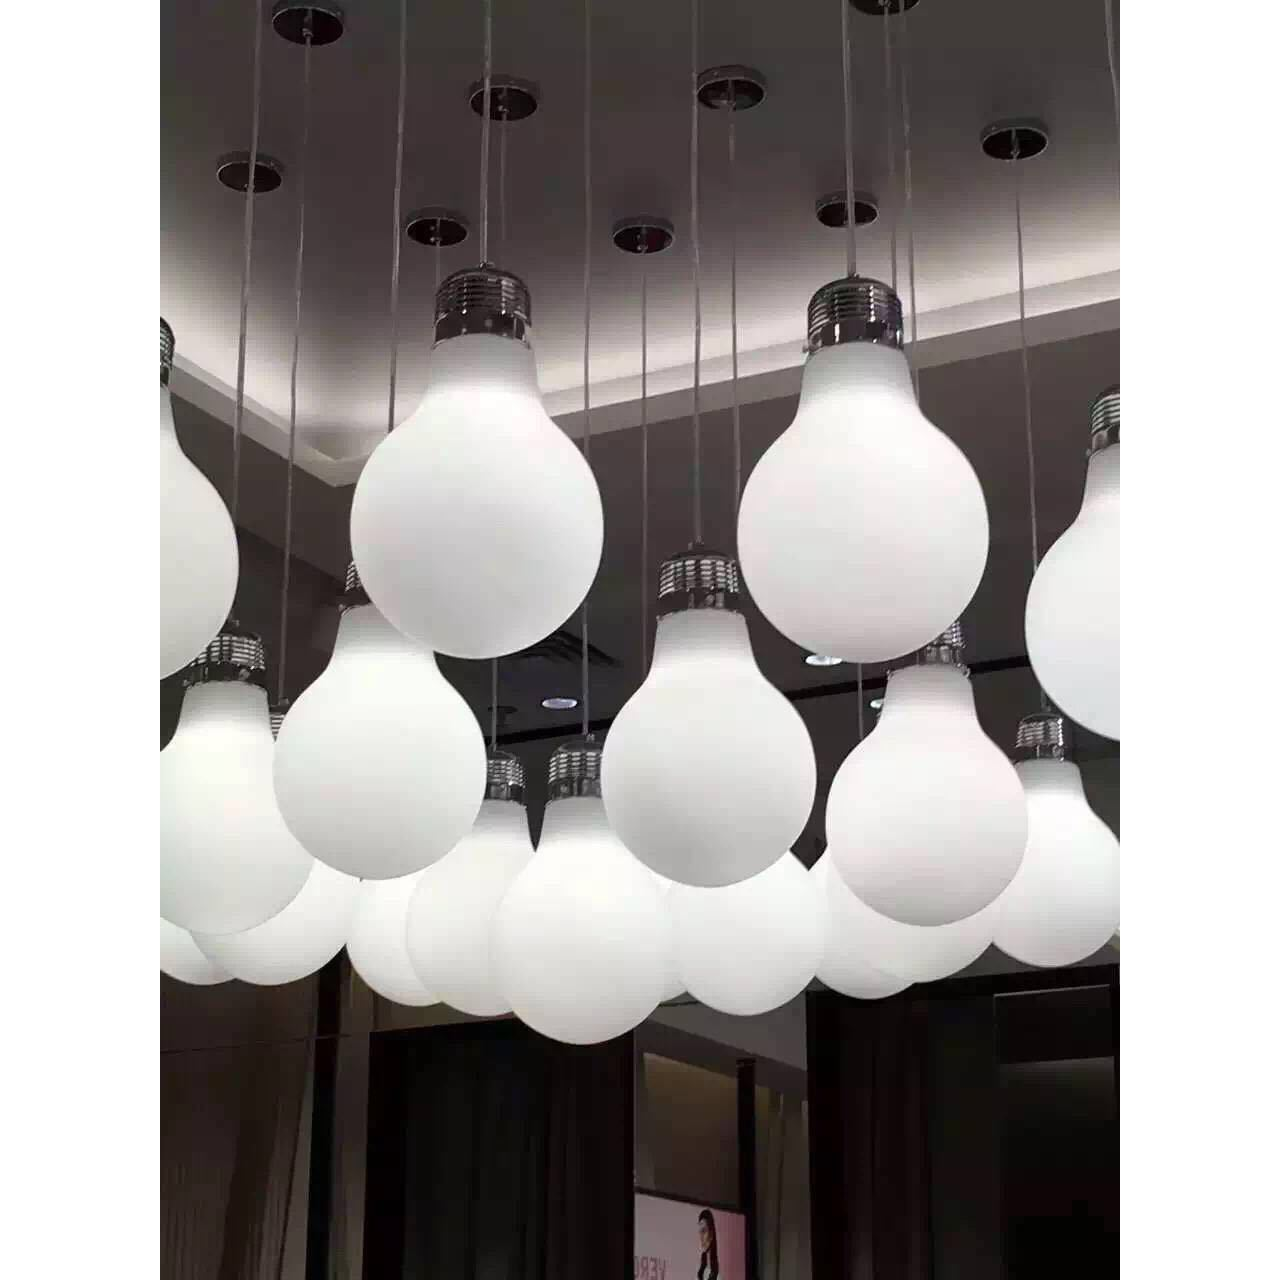 Shop Contempo Lights Lightup White Aluminum Color Changing Pendant Wiring A Light Fixture Lamp On Sale Free Shipping Today 13929478